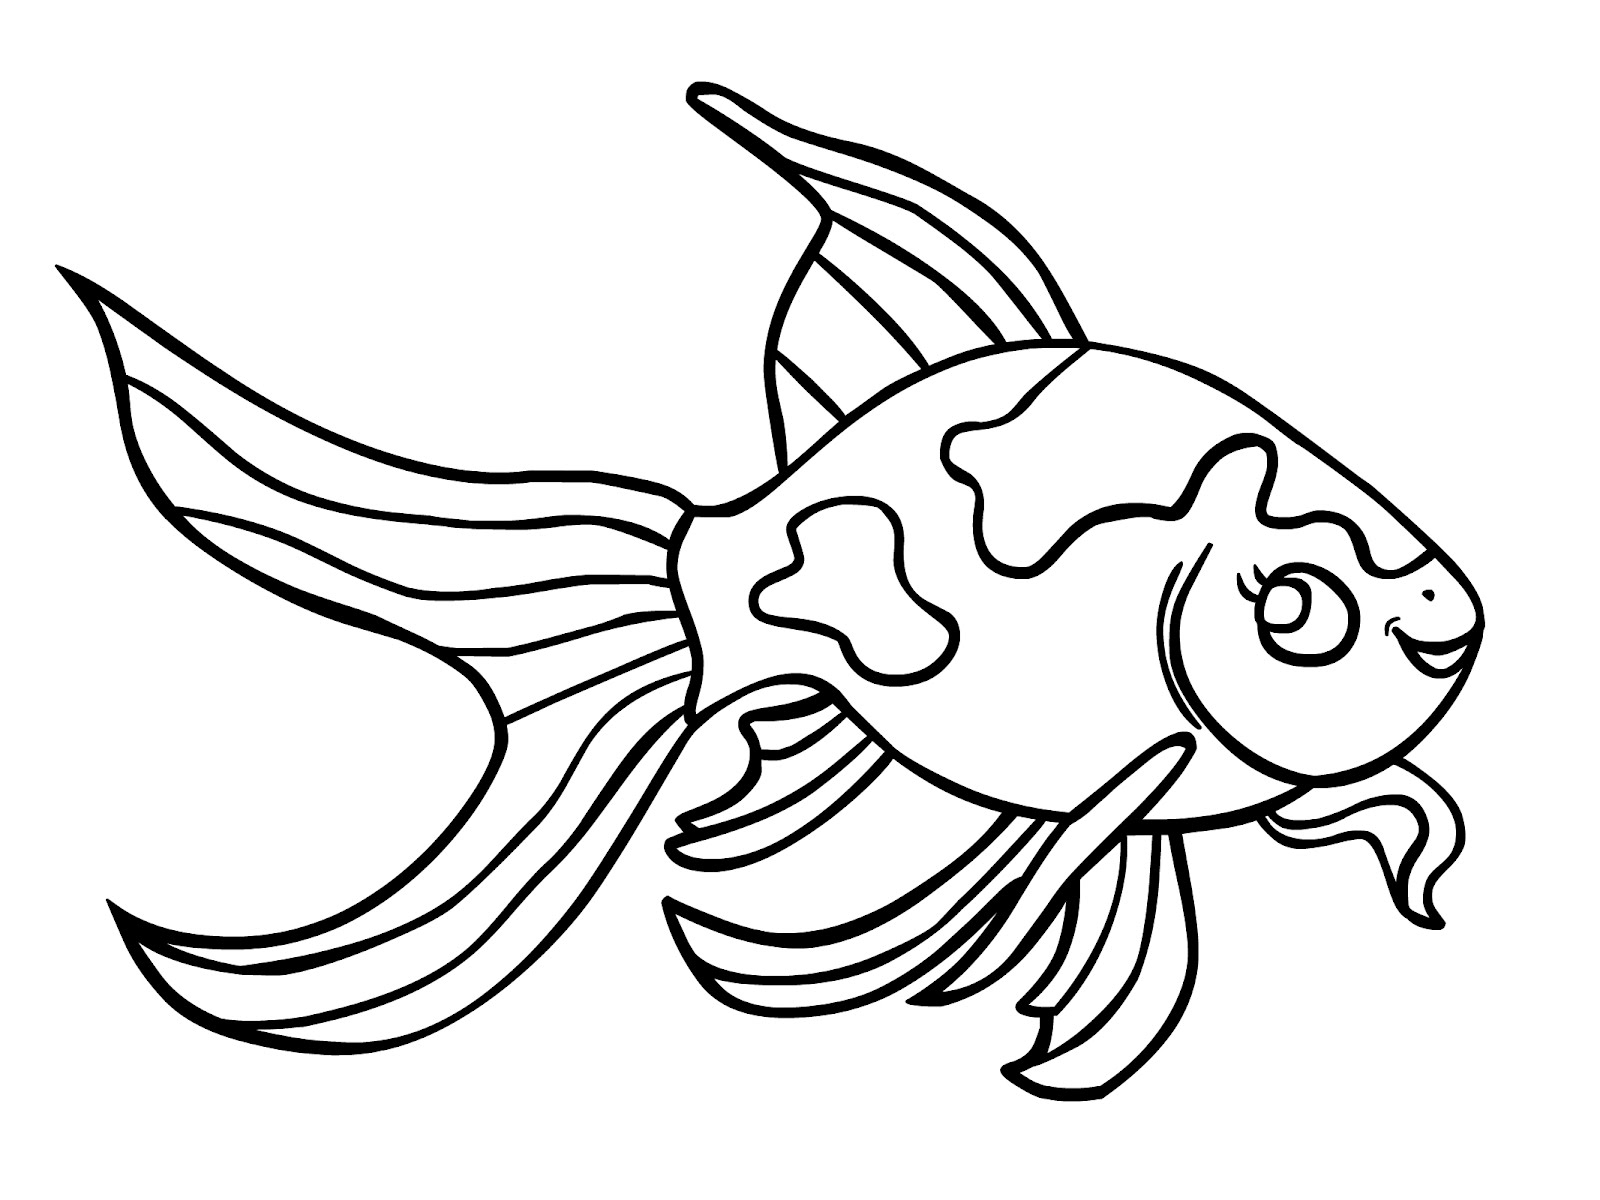 Drawn goldfish coloured fish Coloring Pages Free Free Pages